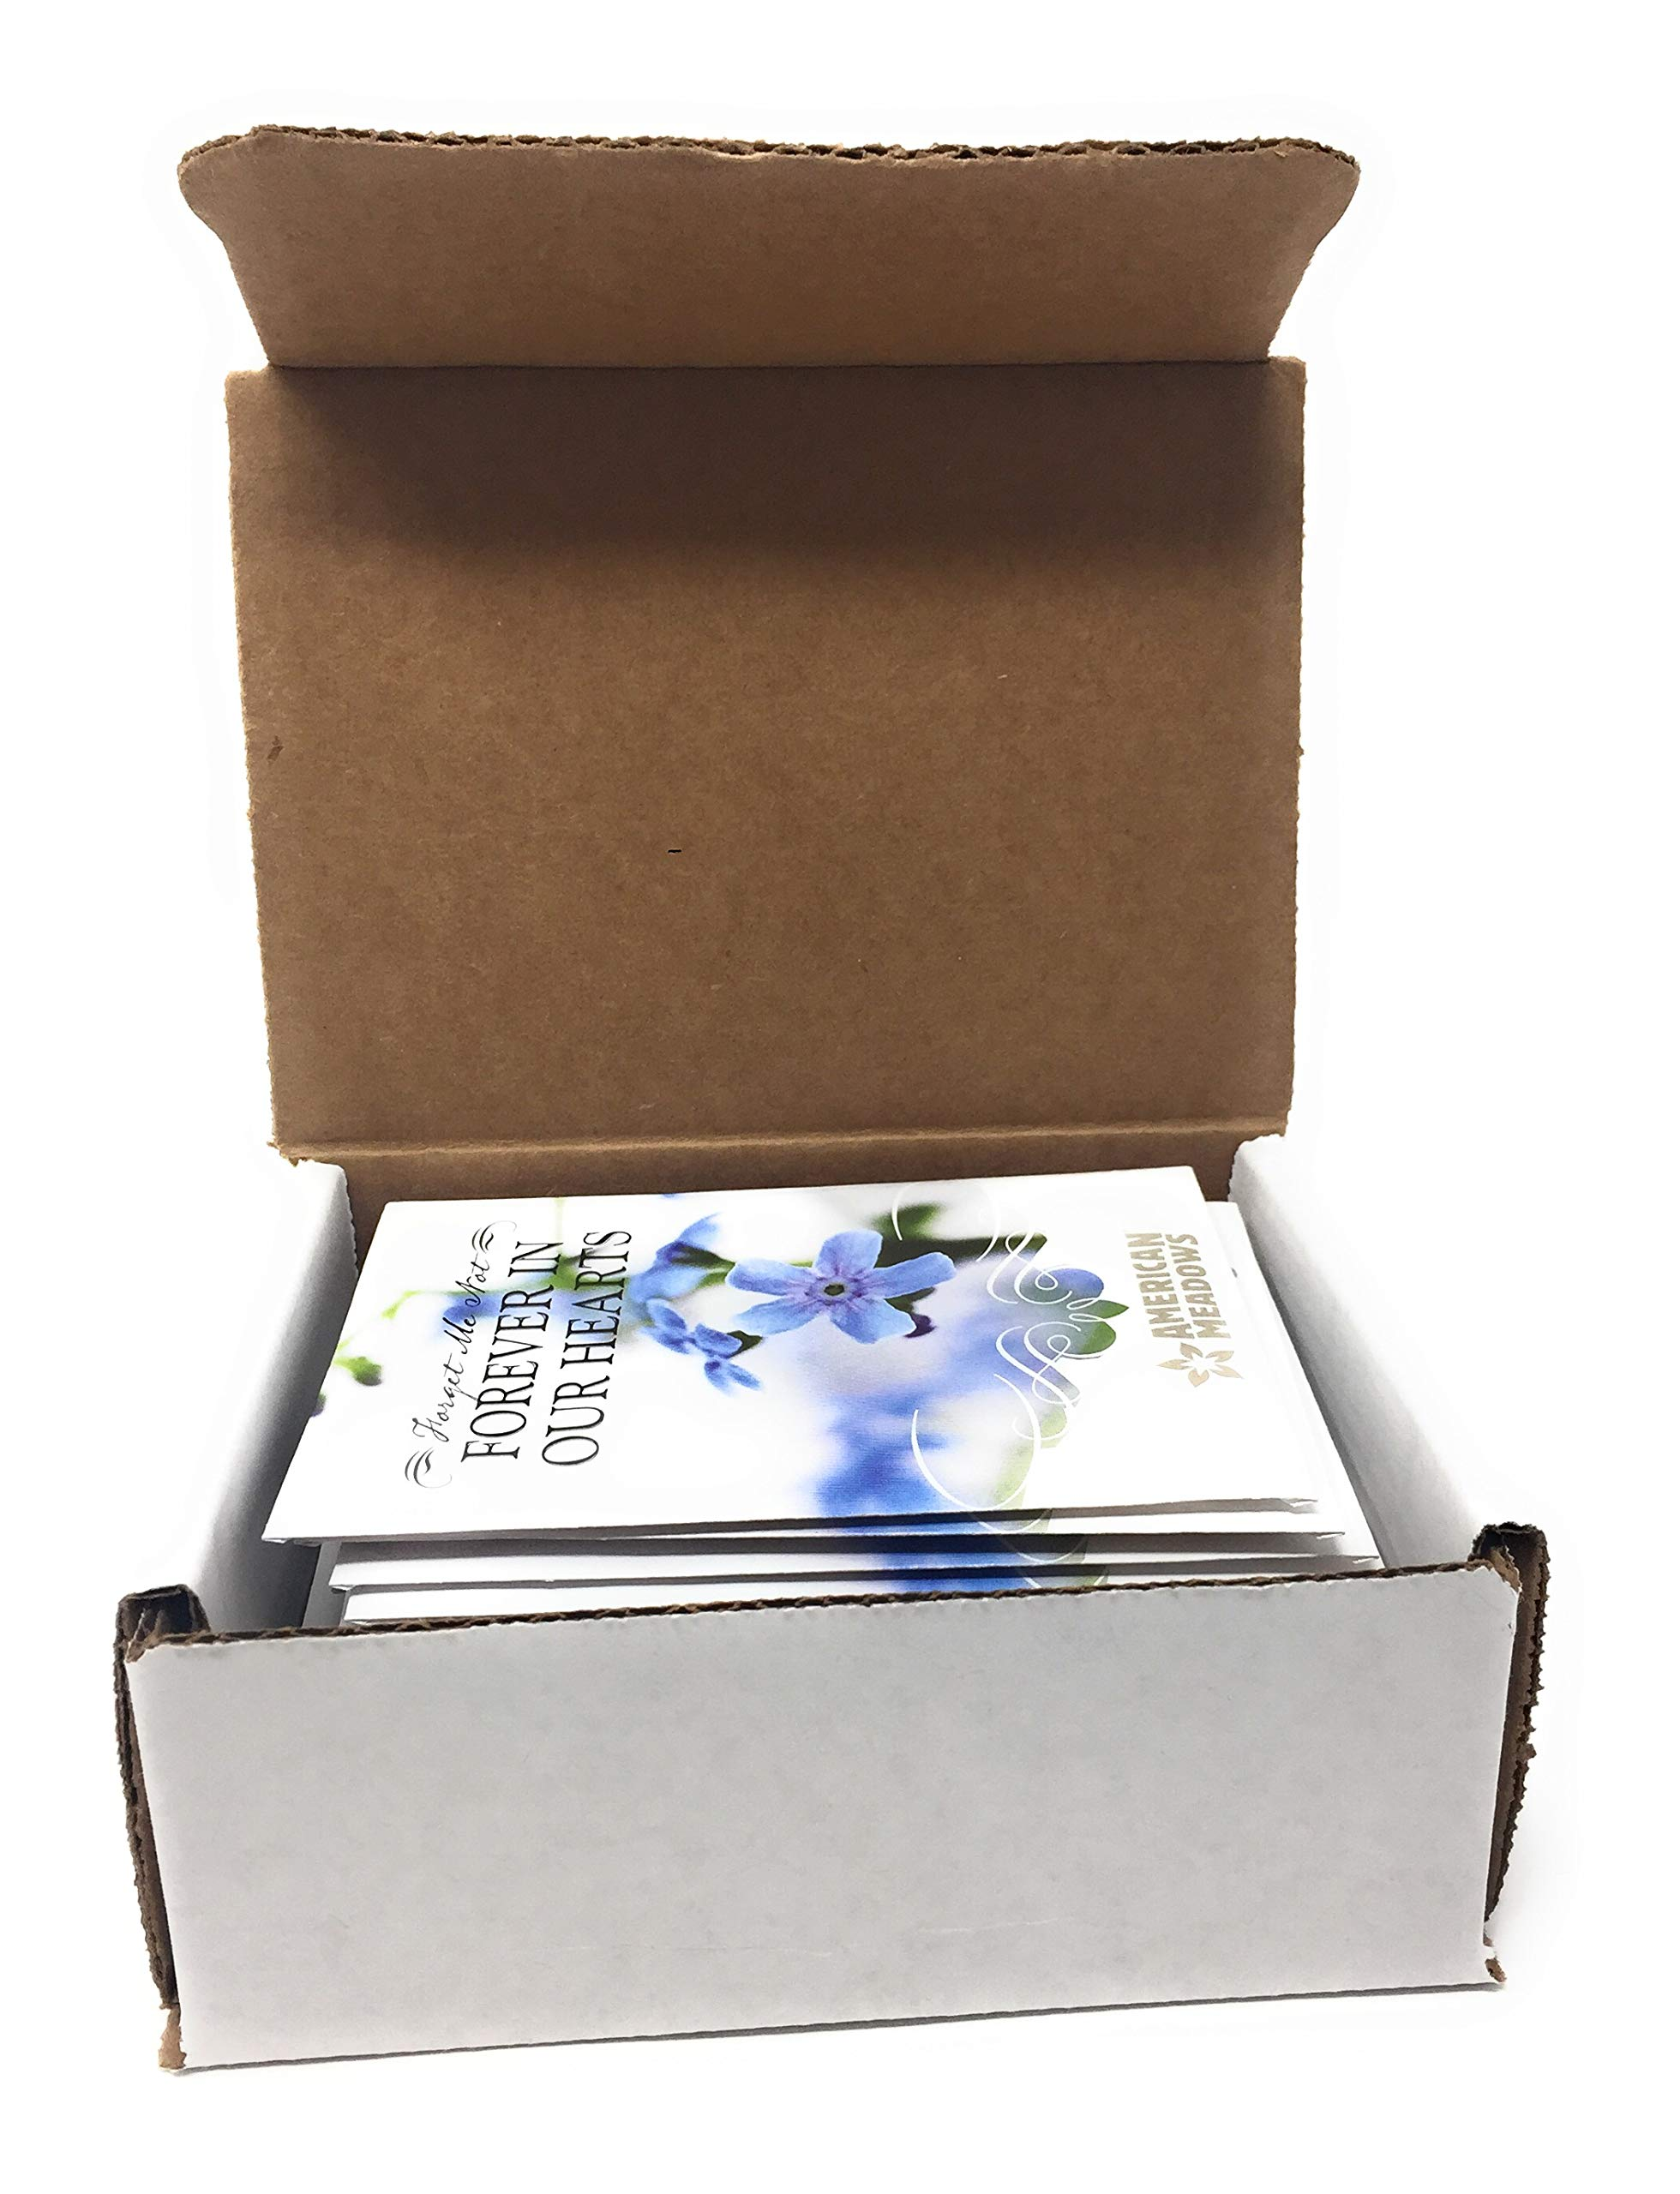 Forever in Our Hearts - Individual Forget Me Not Flower Seed Packet Favors - Ready to Give - Pack of 20 by American Meadows (Image #3)